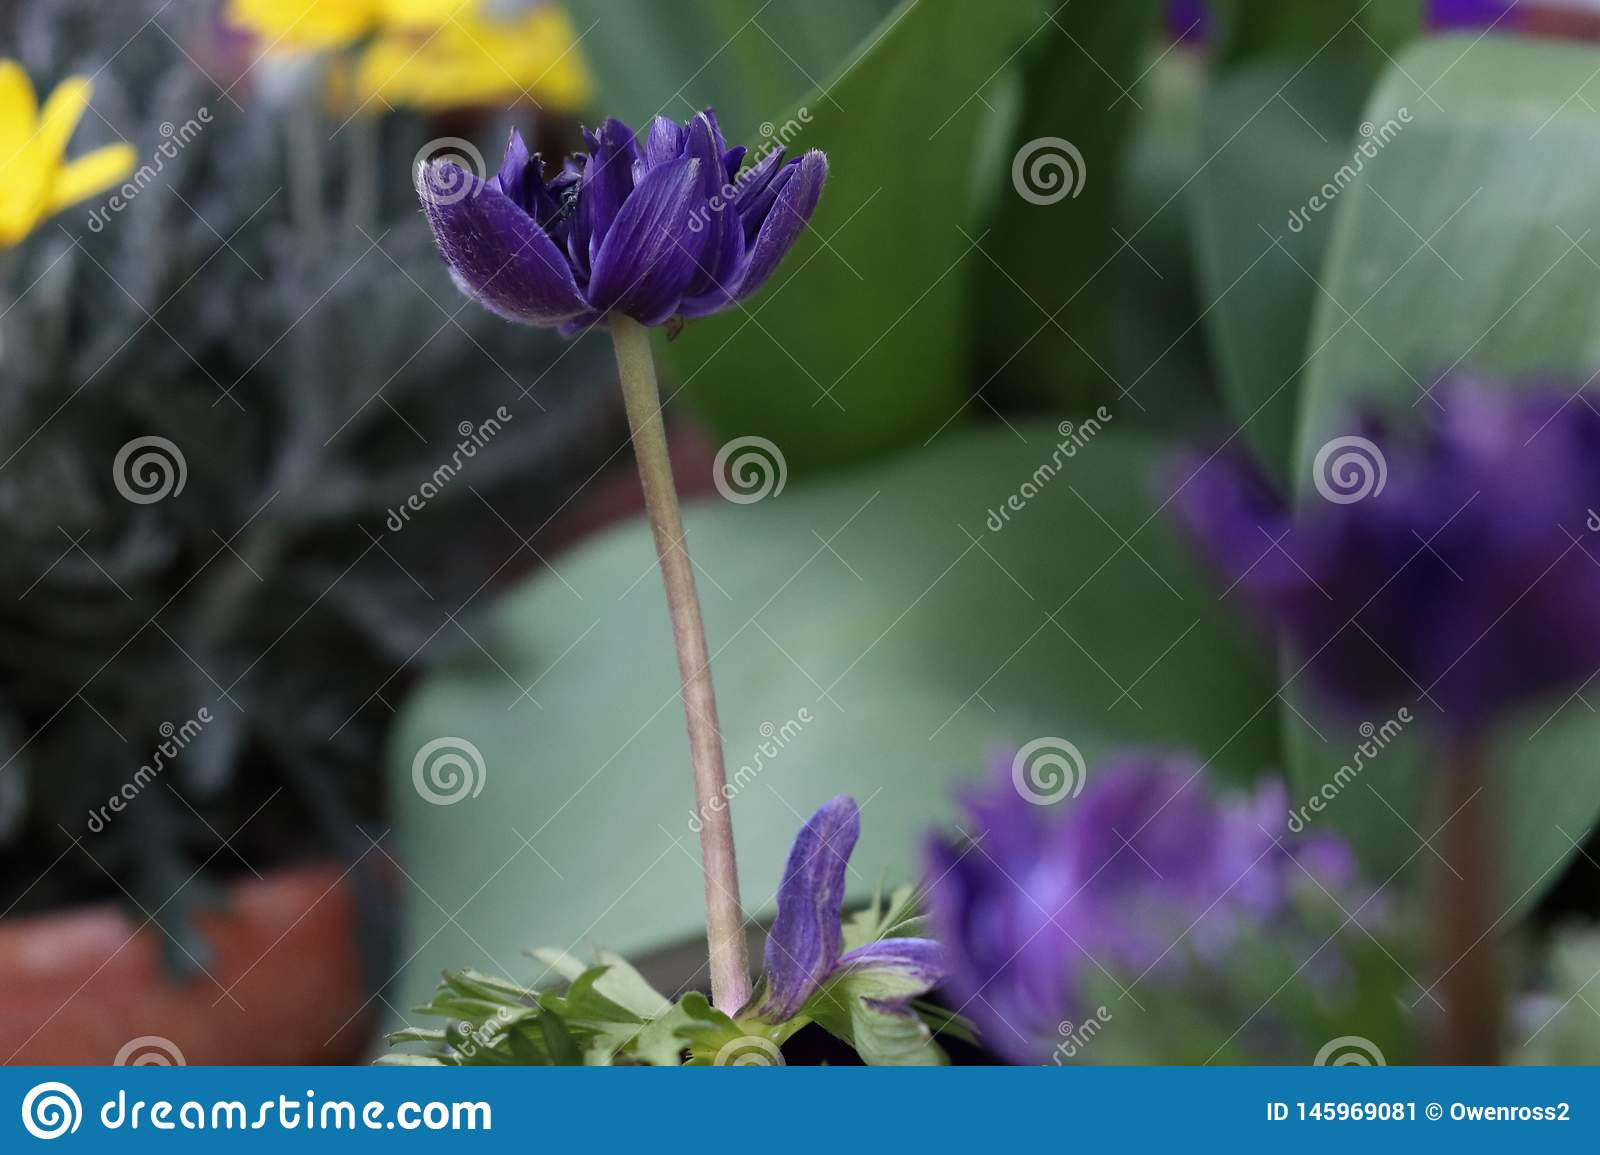 Magenta / Violet flower with a blurred background